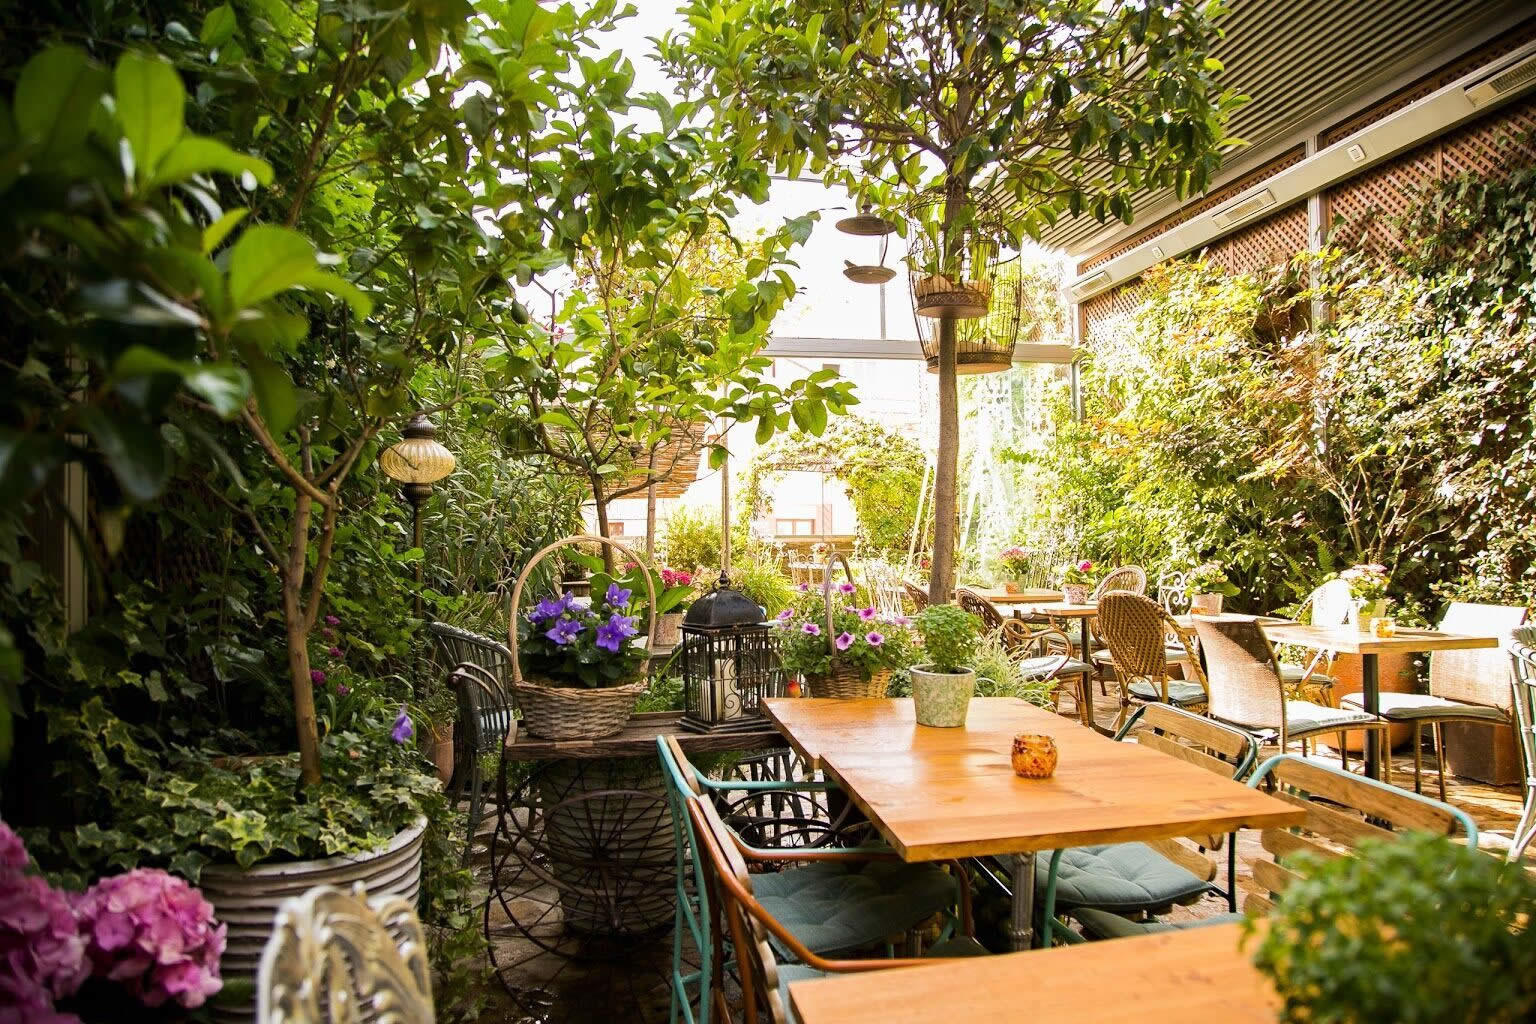 El jardin secreto de salvador bachiller a secret address for Cafe el jardin secreto